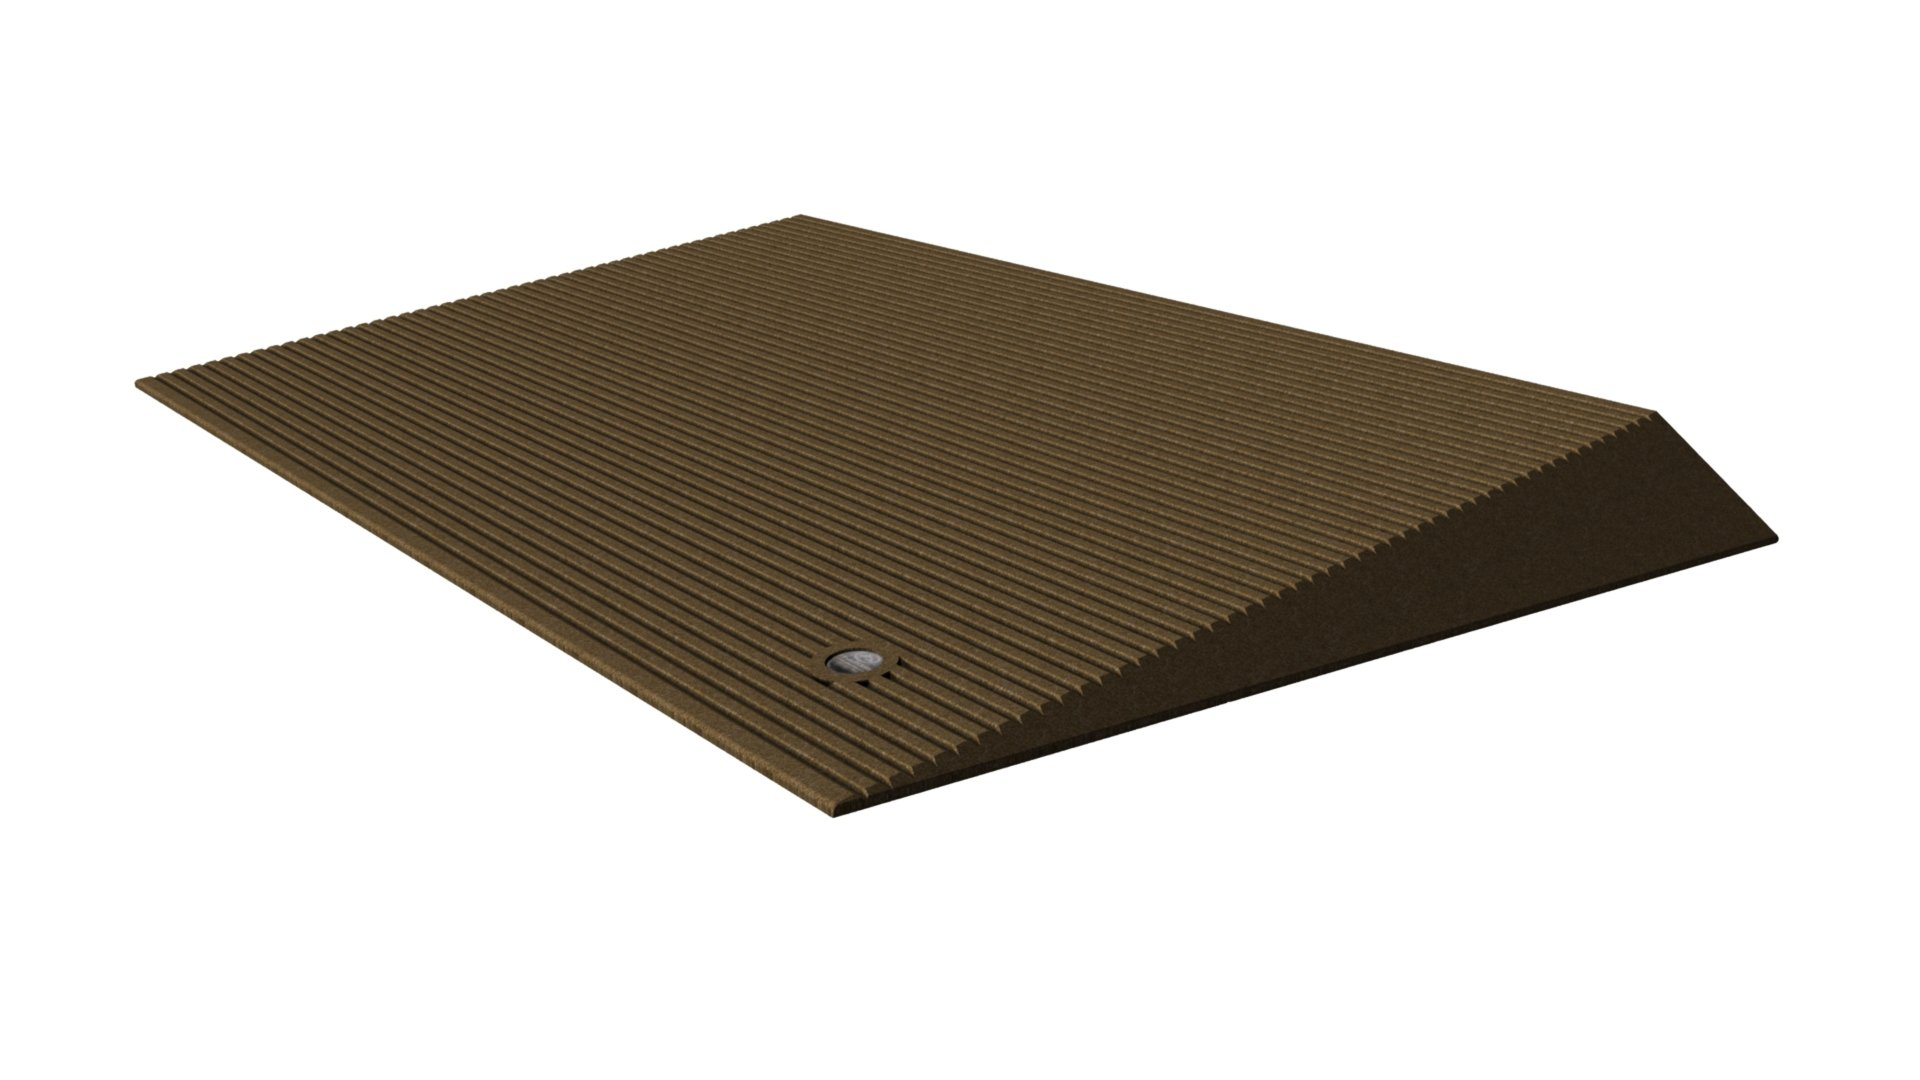 EZ-ACCESS Transitions Angled Entry Mat, Hazelnut Brown, 31 Pound